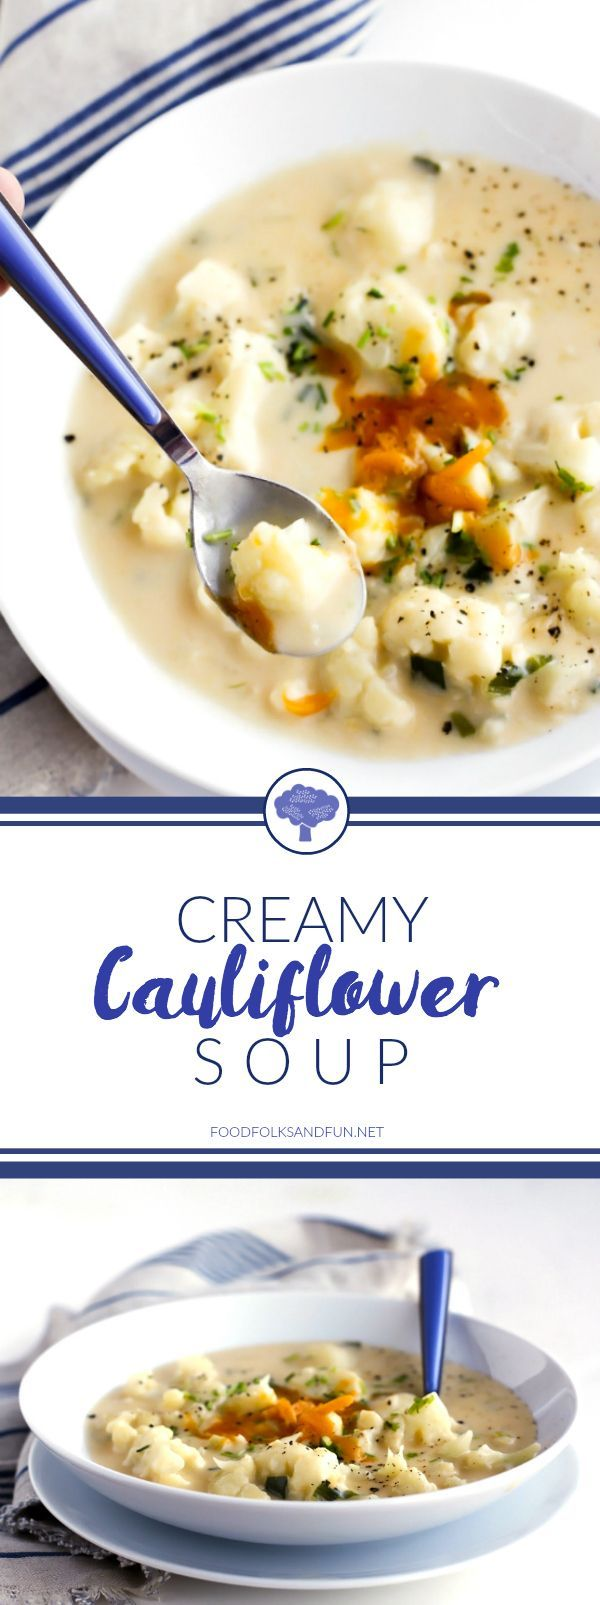 Comfort Food Alert: This Creamy Cauliflower Soup recipe is savory, cheesy, and filled with tender chunks of cauliflower plus all of the comforts of a home-cooked meal!